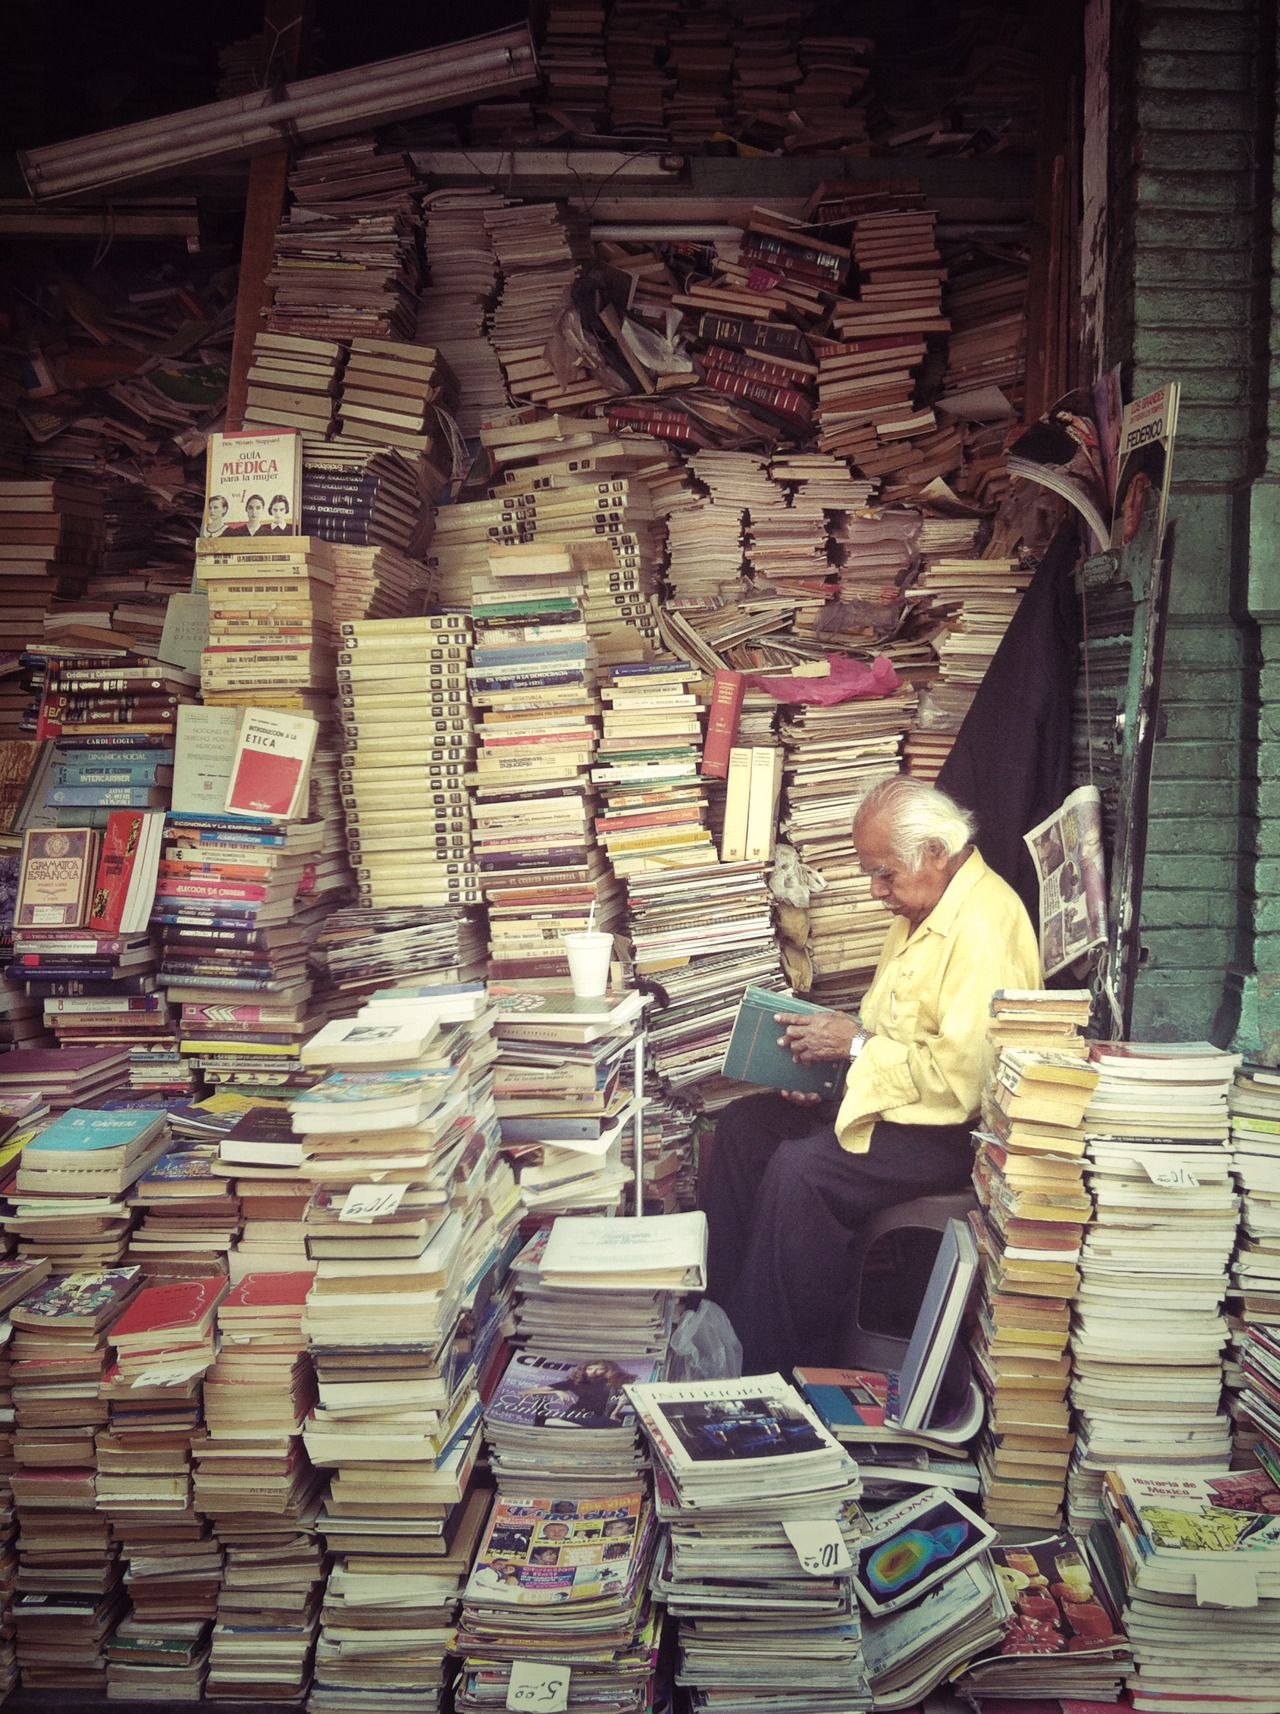 Lectura para unas vidas. Enterrado en libros. [ Reading for life. BURIED IN BOOKS.] © Eneas De Troya (Photographer, Mexico City, MEXICO) via flickr.